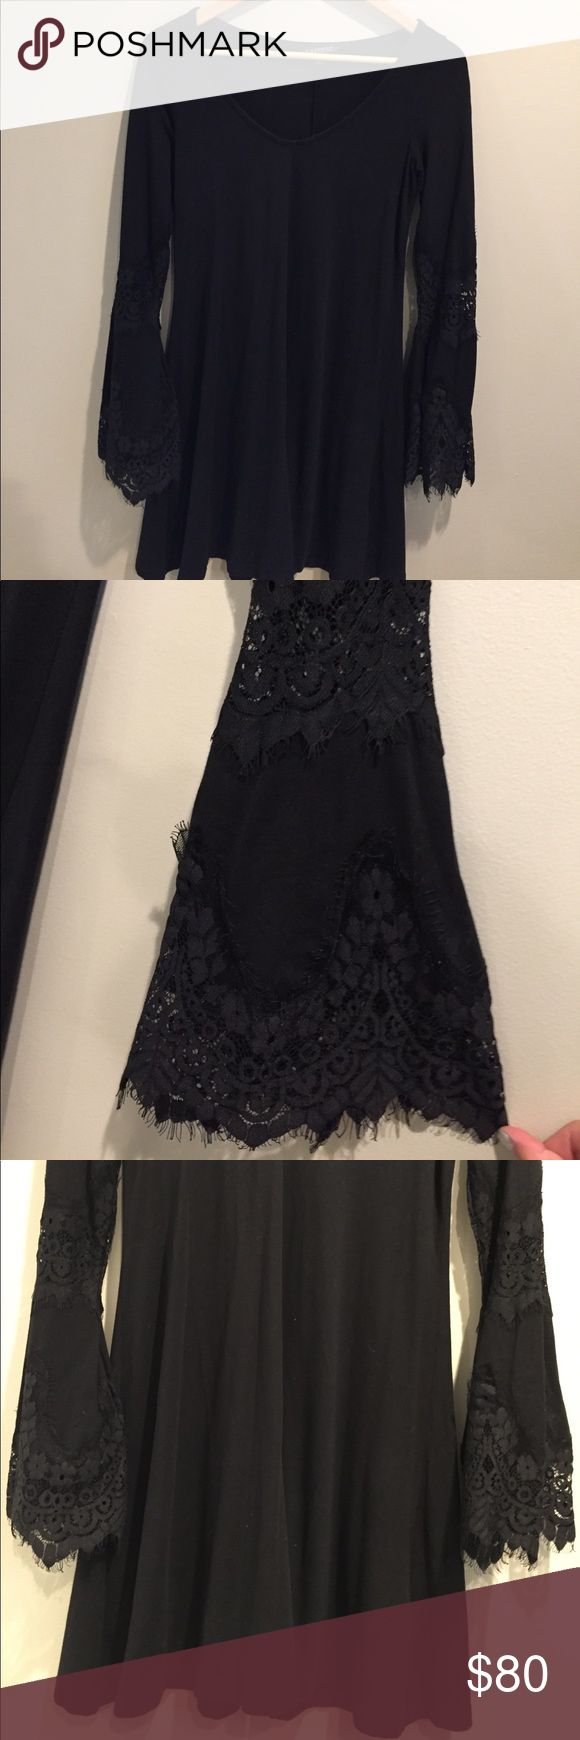 Express flare sleeve lace dress Black long sleeve flowy dress. Likely worn, perfect condition. Size is XS but fits like a small/medium. Express Dresses Long Sleeve